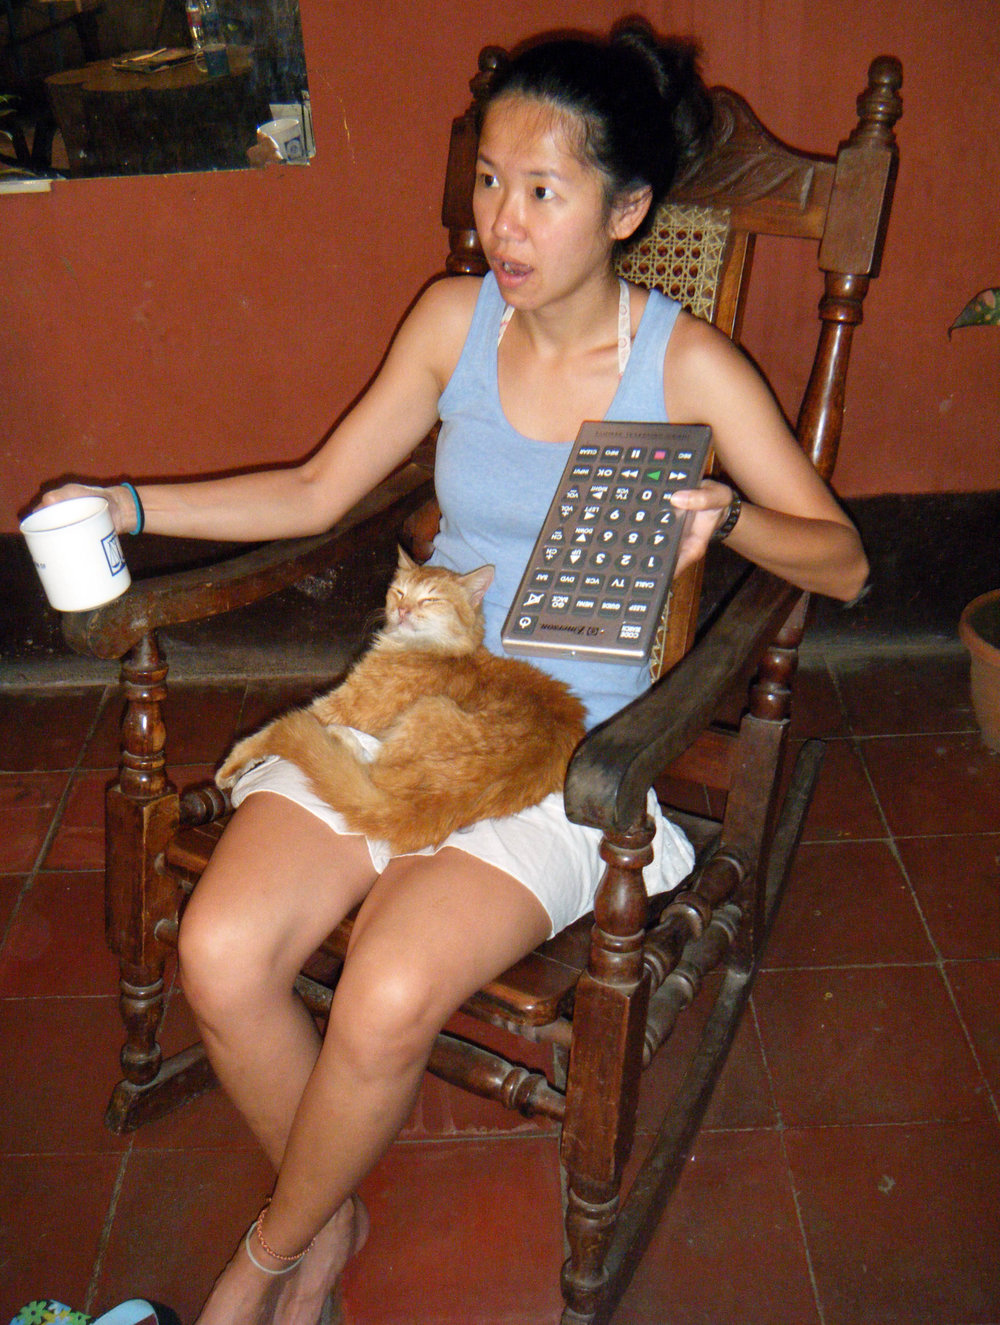 giant remote and kittie.jpg